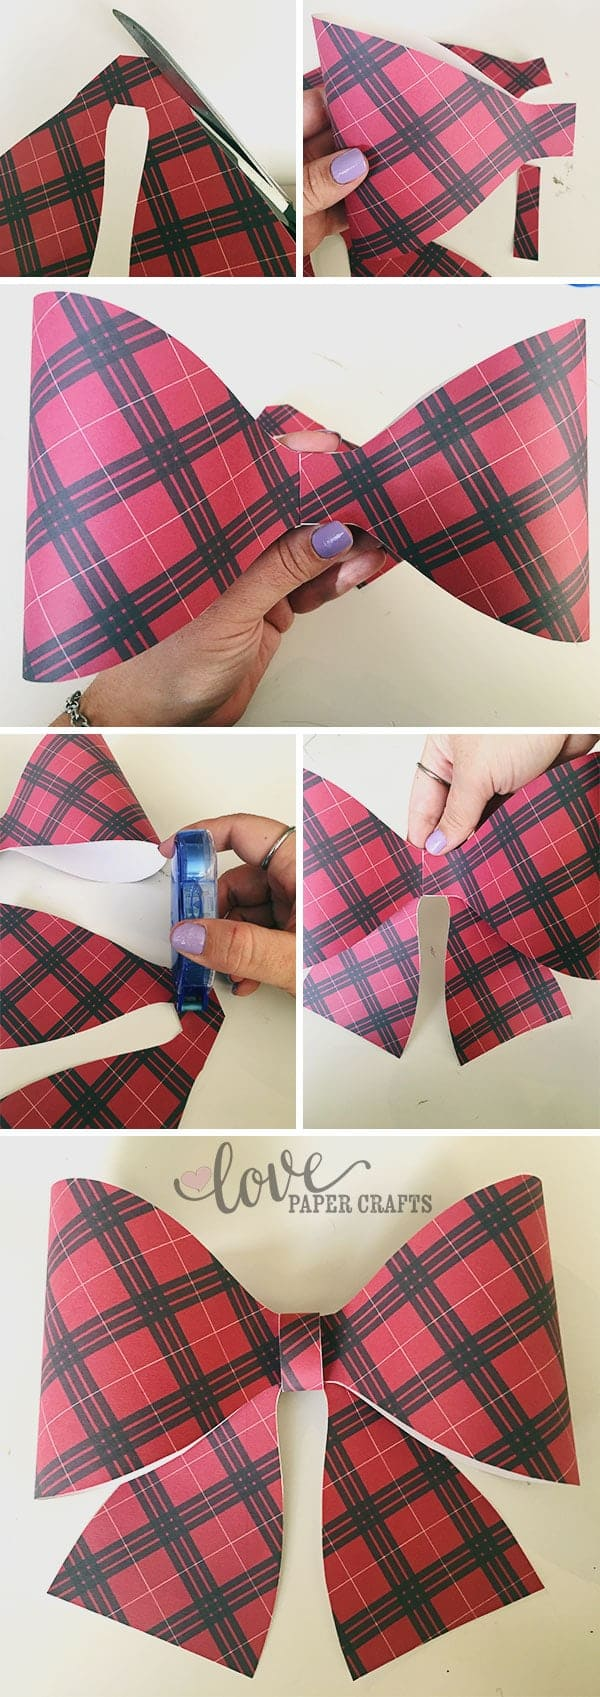 Instructions on how to put together a large paper bow | LovePaperCrafts.com